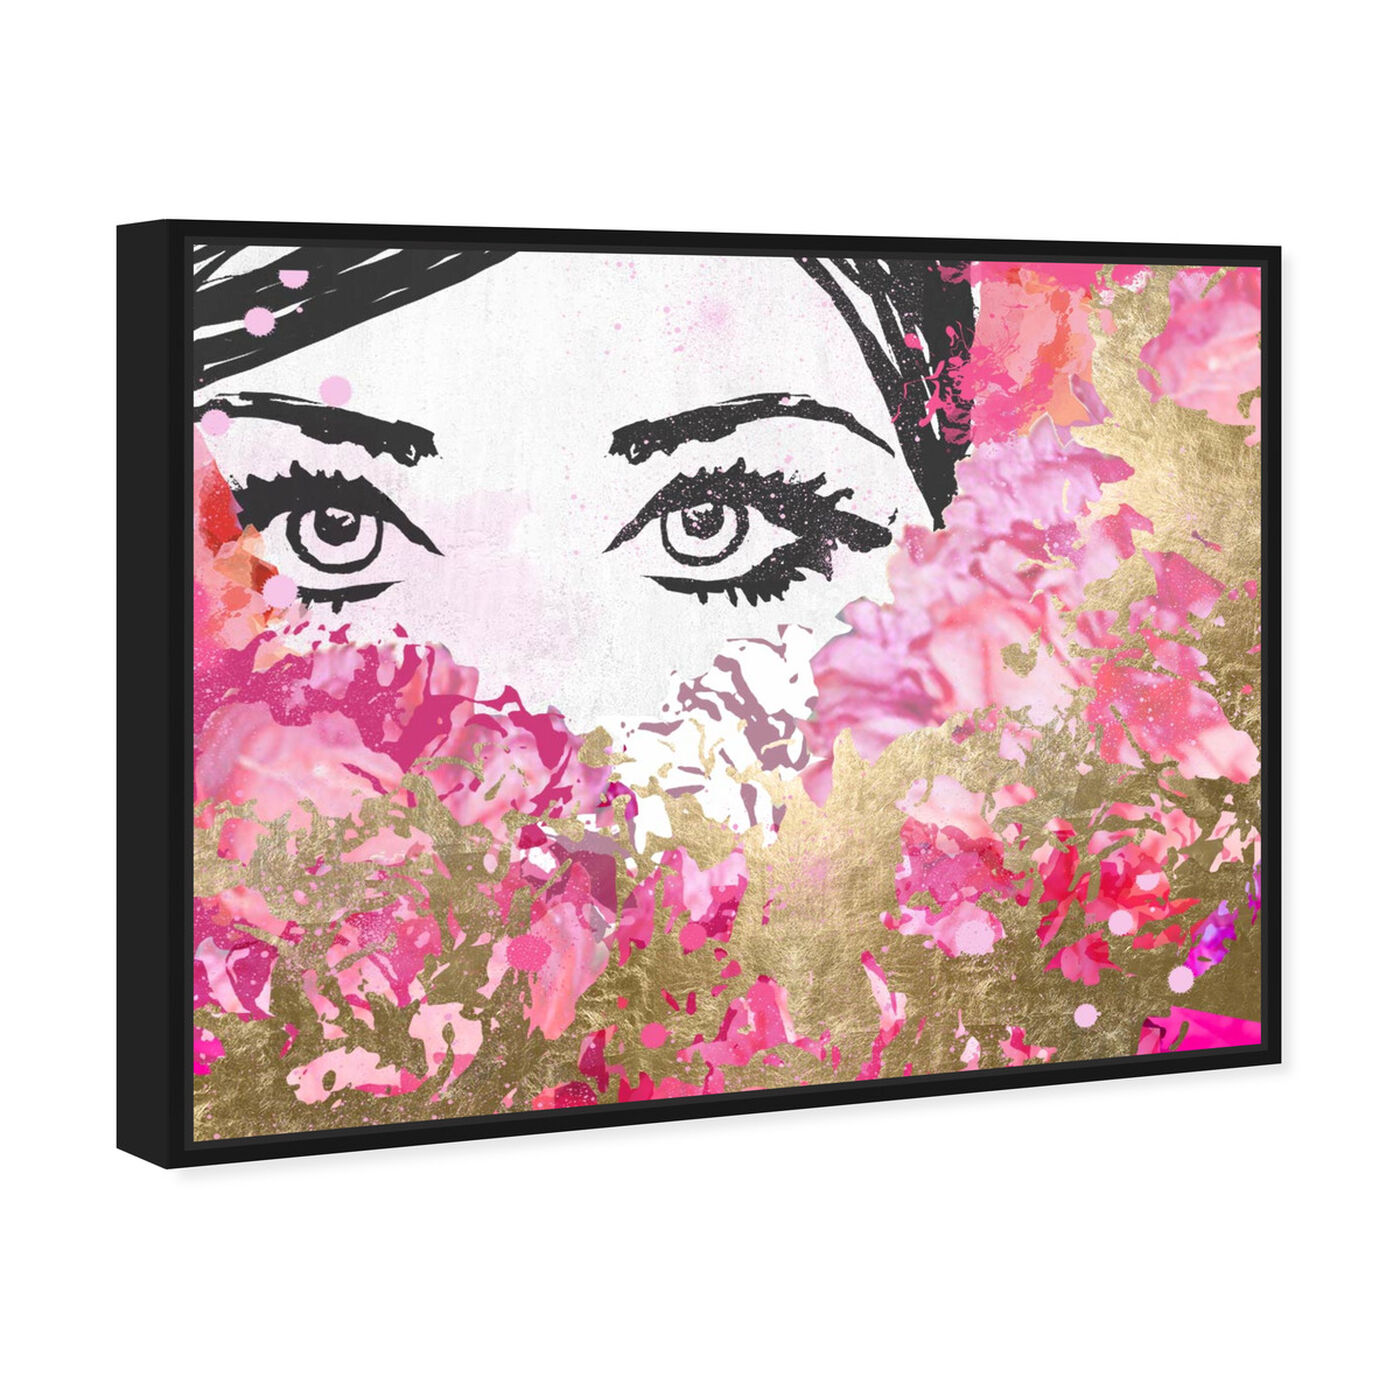 Angled view of Smell the Flowers featuring fashion and glam and portraits art.